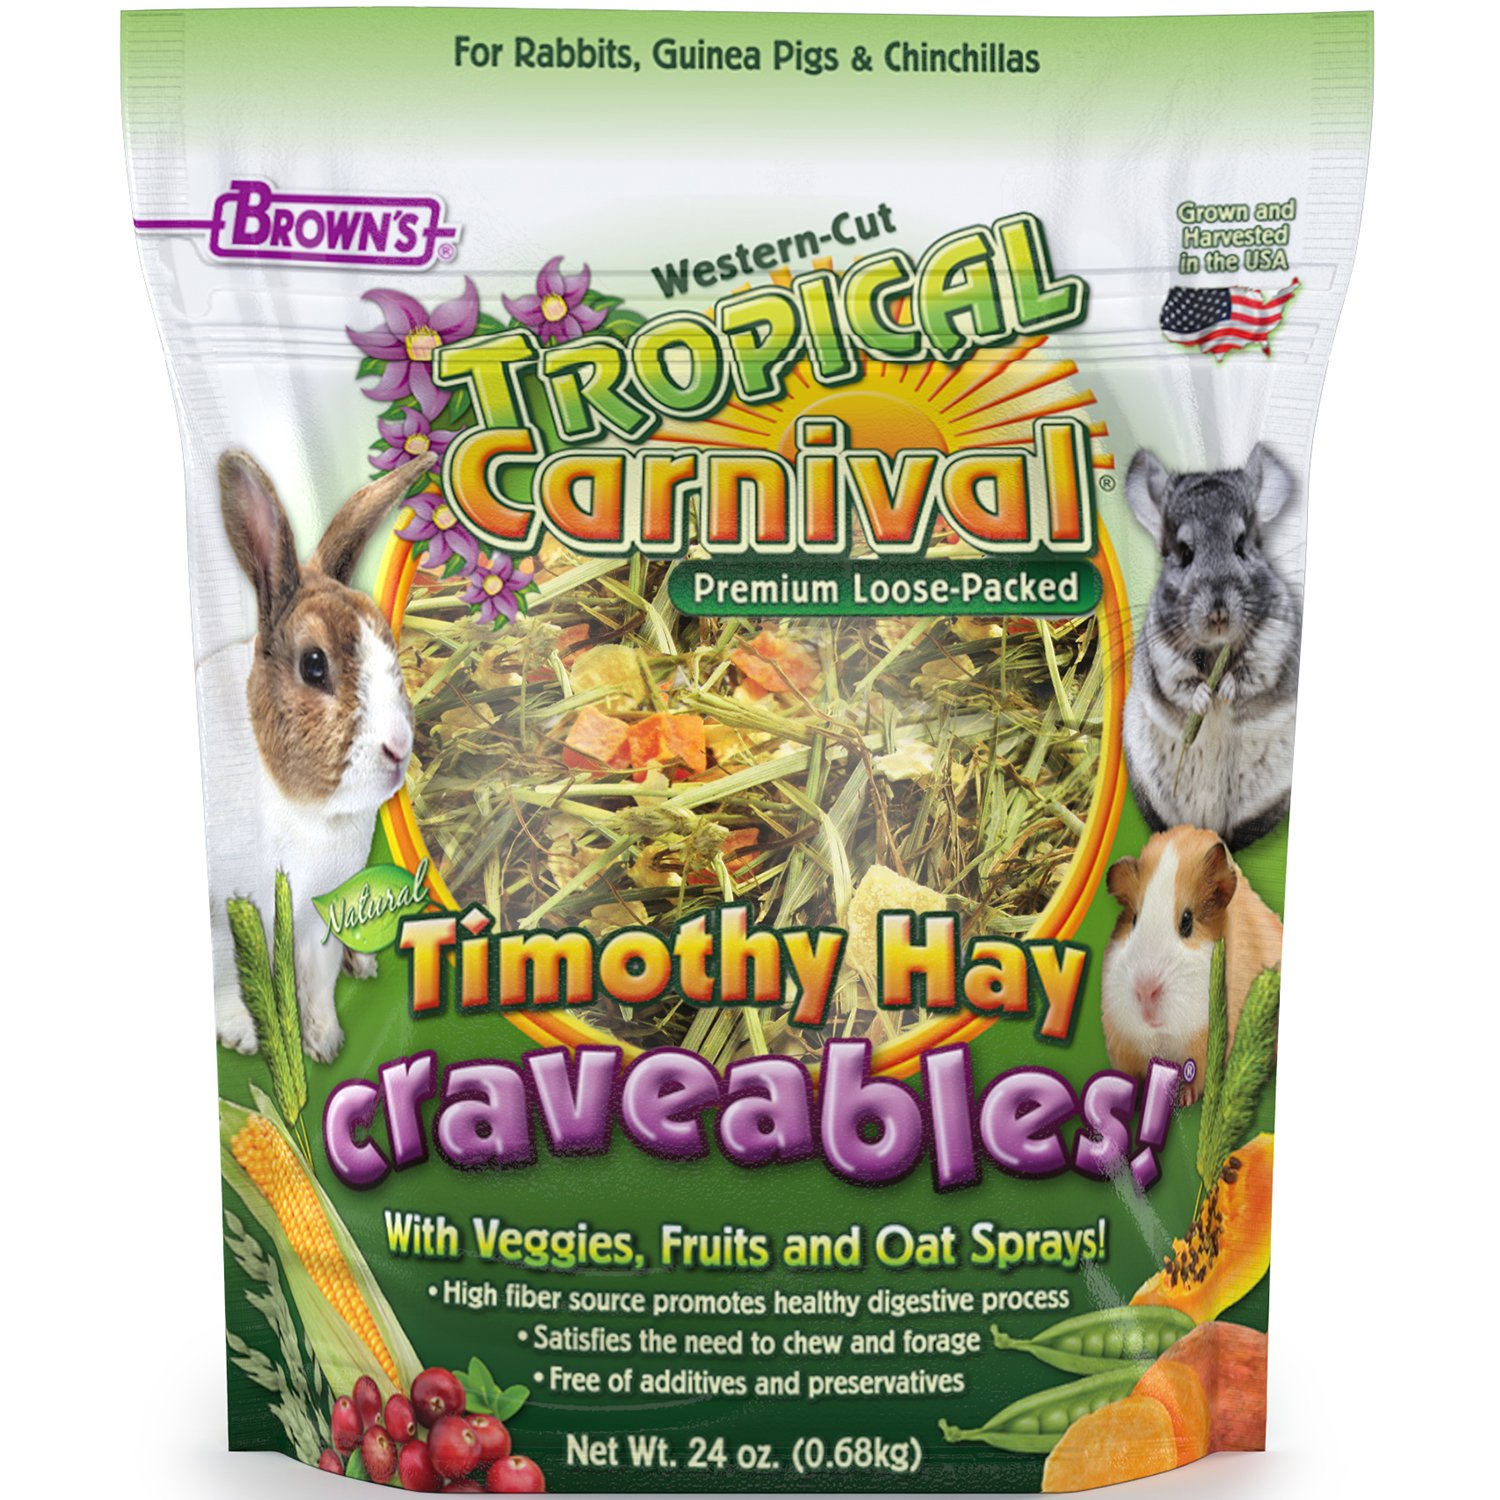 Tropical Carnival F.M. Brown's Natural Timothy Hay Craveables with Veggies, Fruits, and Oat Sprays, Foraging Treat with High Fiber for Healthy Digestion, 24oz